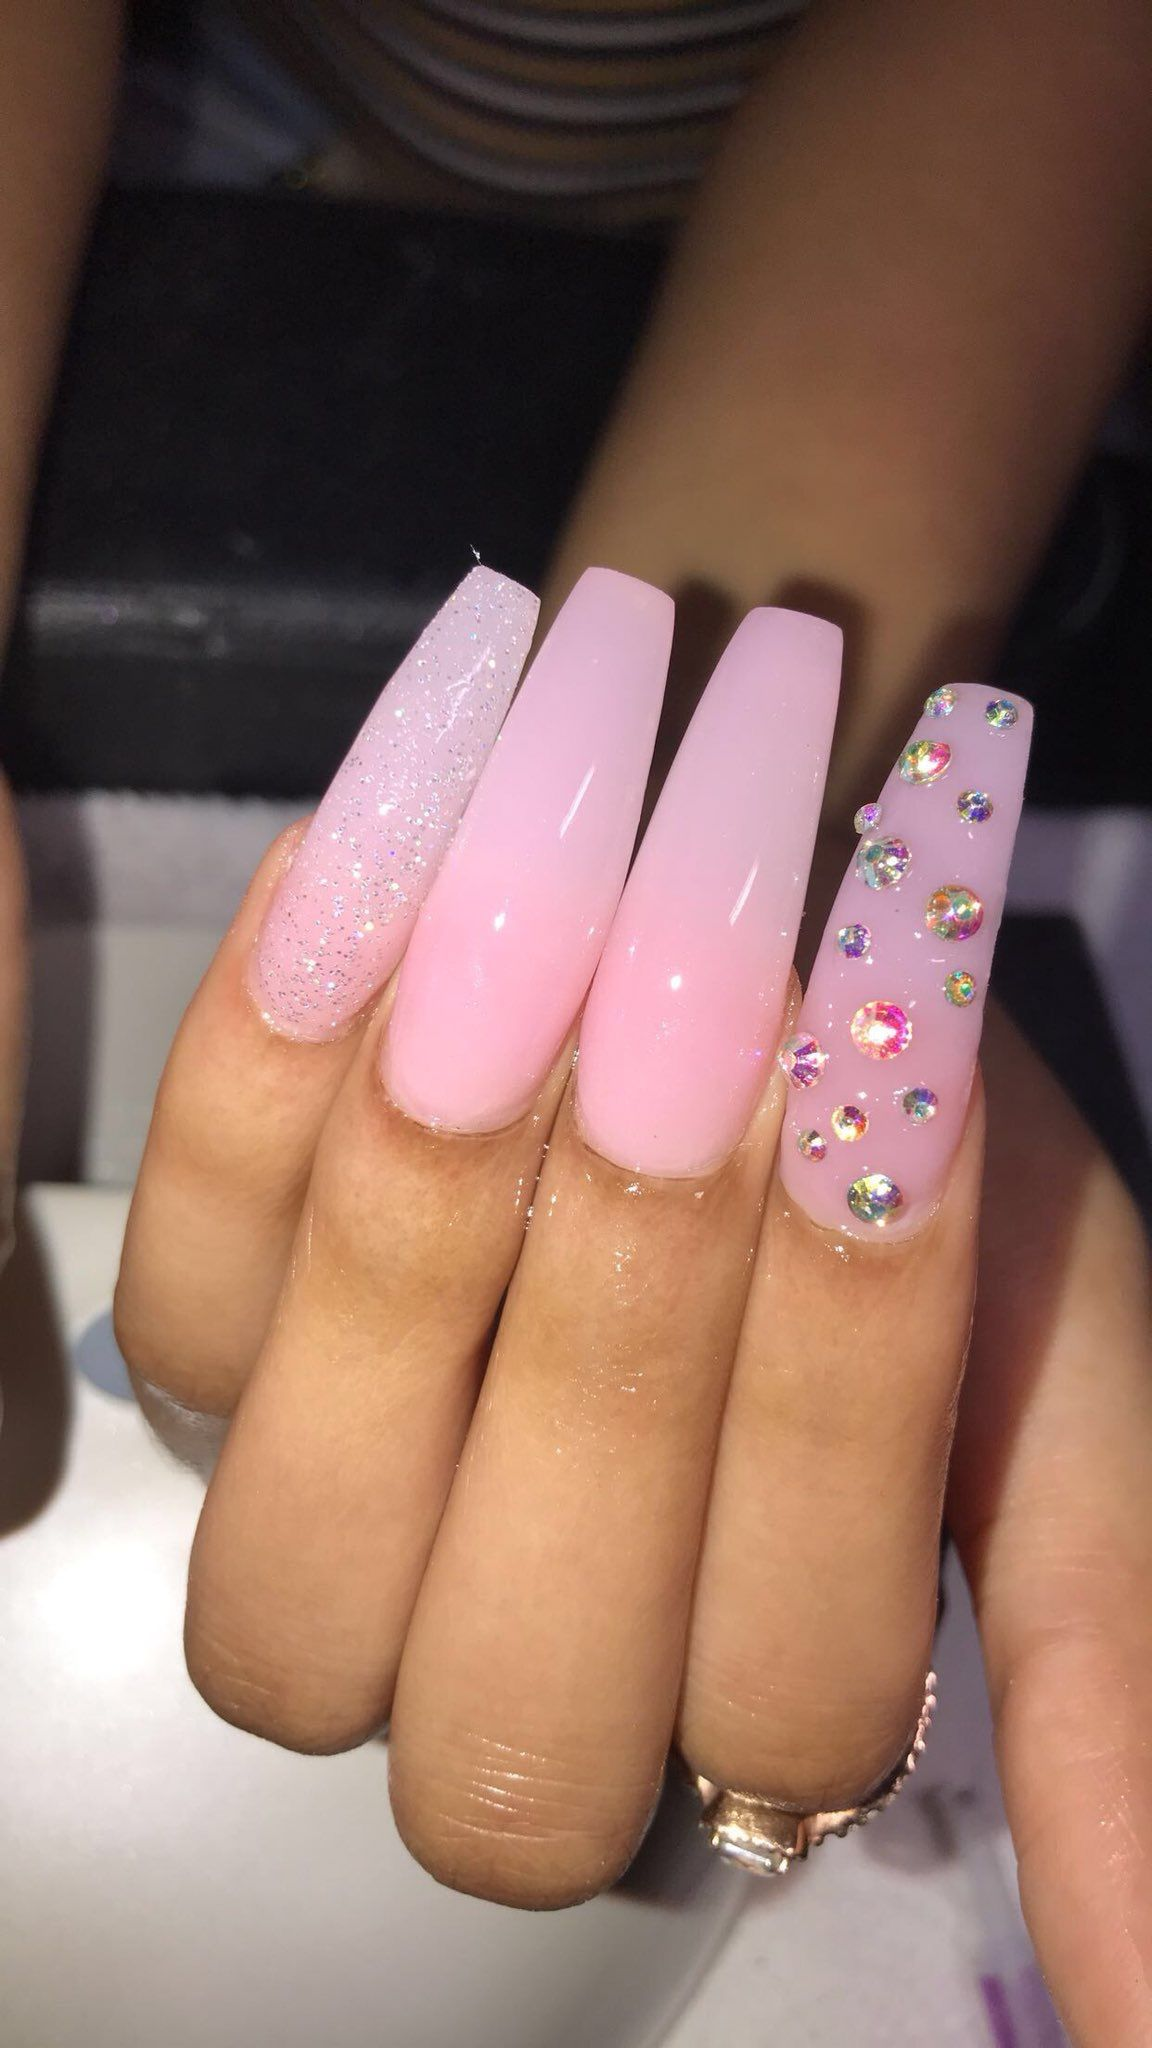 Pin by mel henfield on Nails | Long acrylic nails, Cute ...